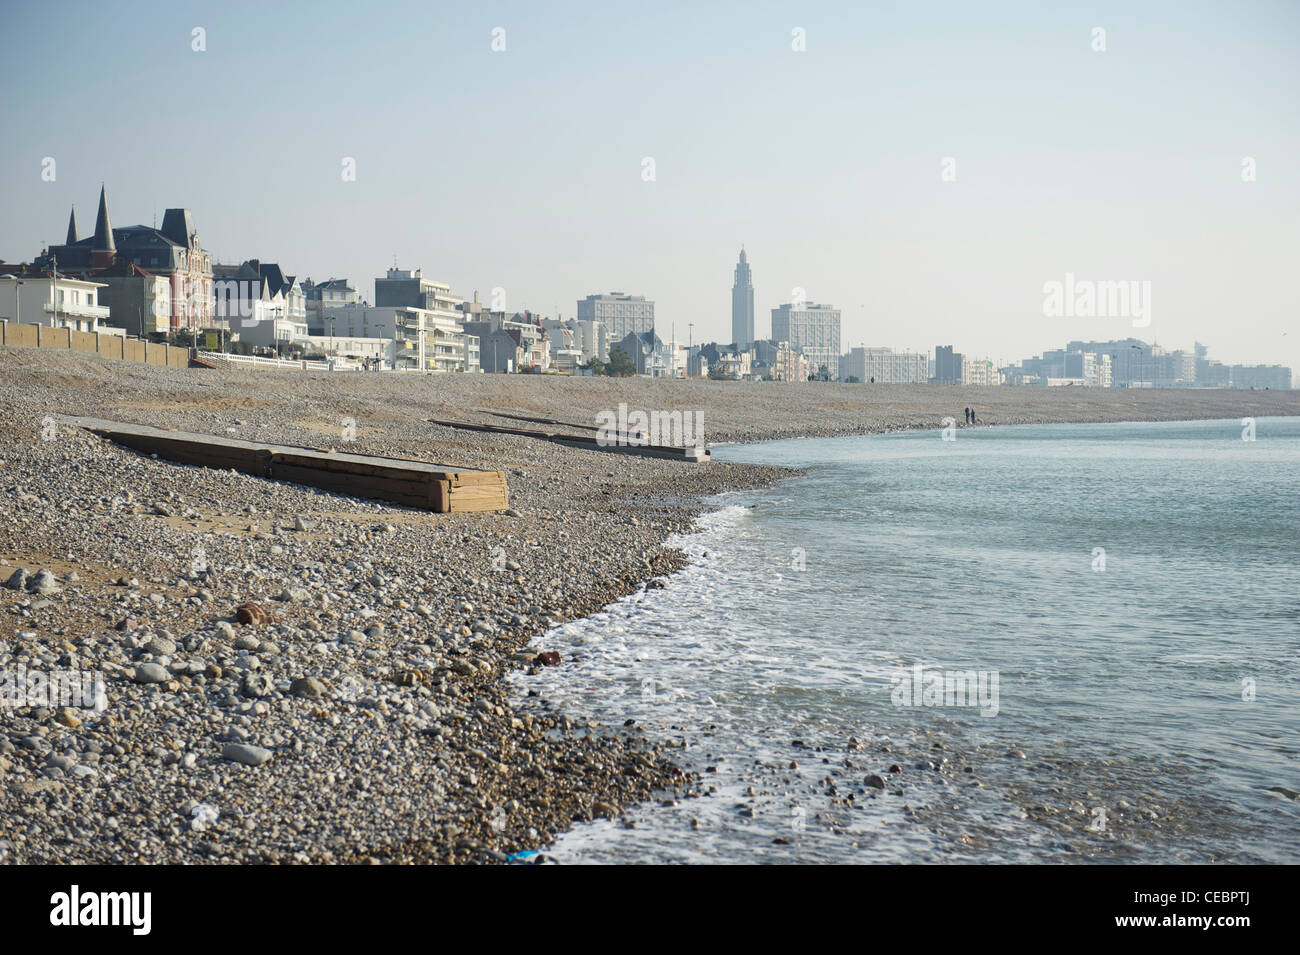 The pebble beach of Le Havre on the Seine estuary in Normandy, France - Stock Image